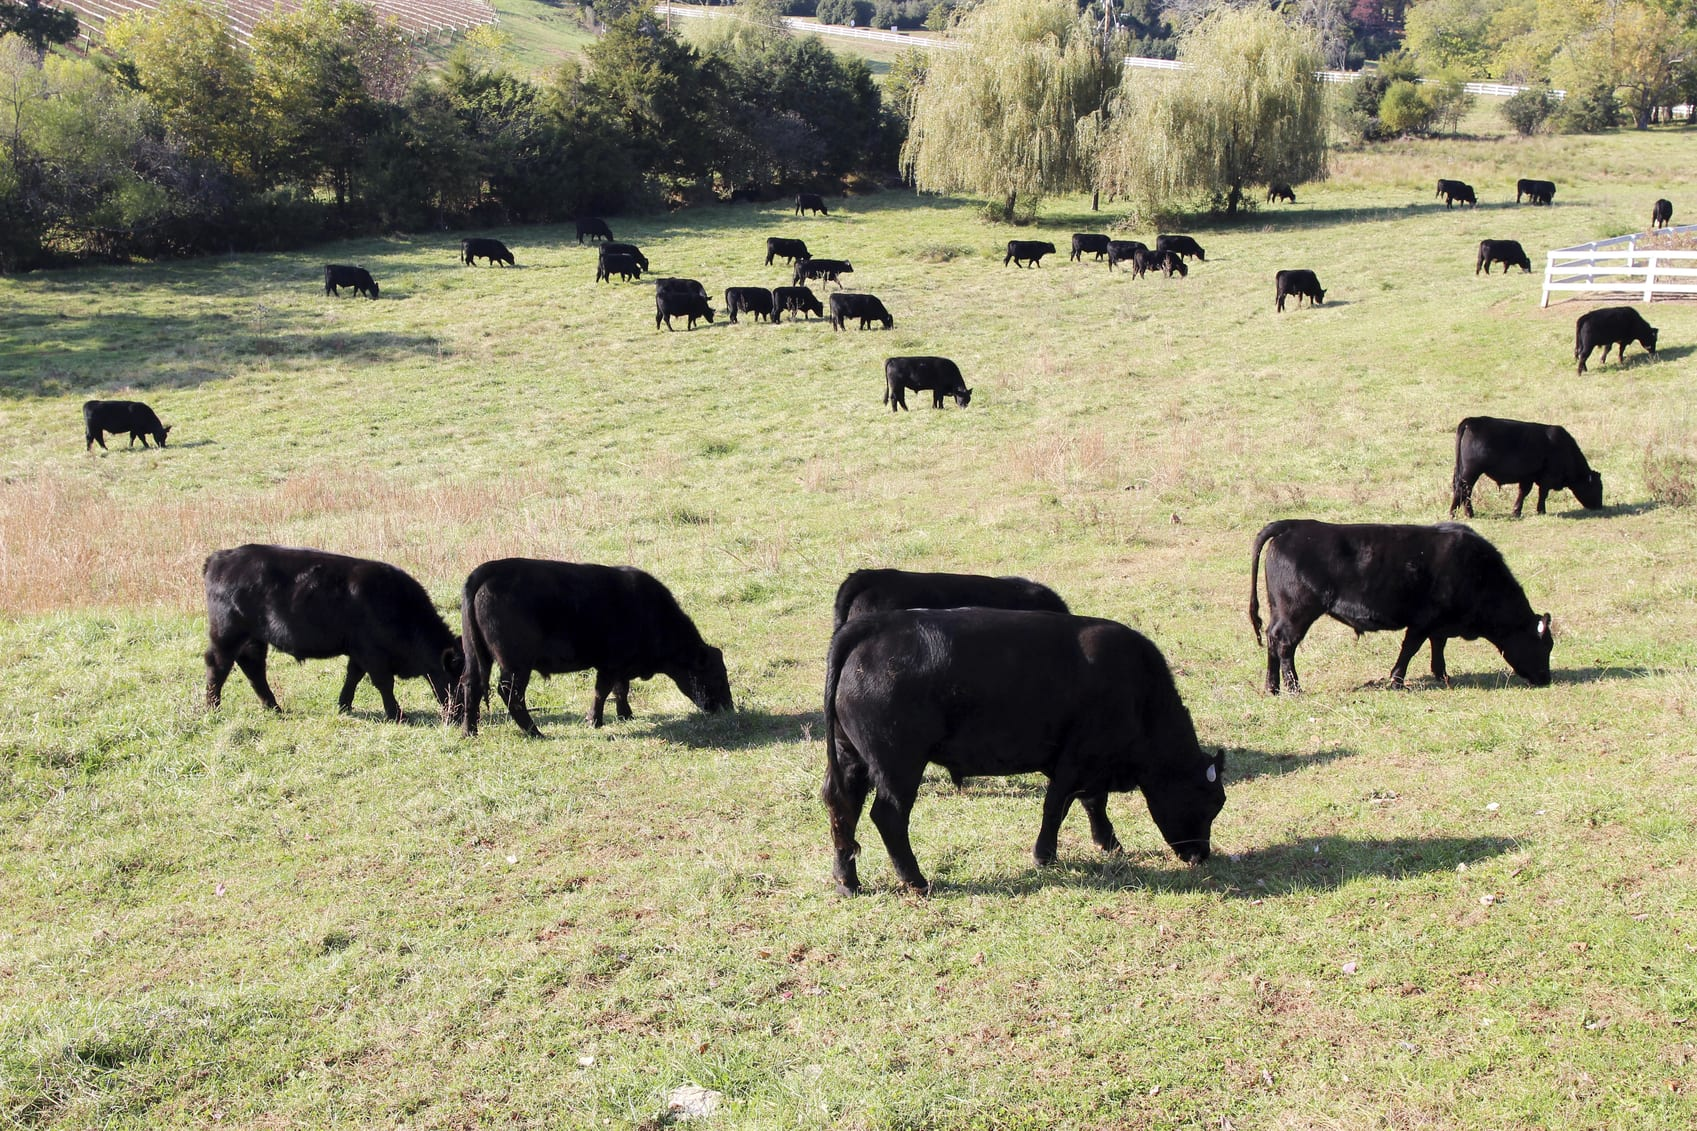 Black Angus beef cattle grazing in a pasture